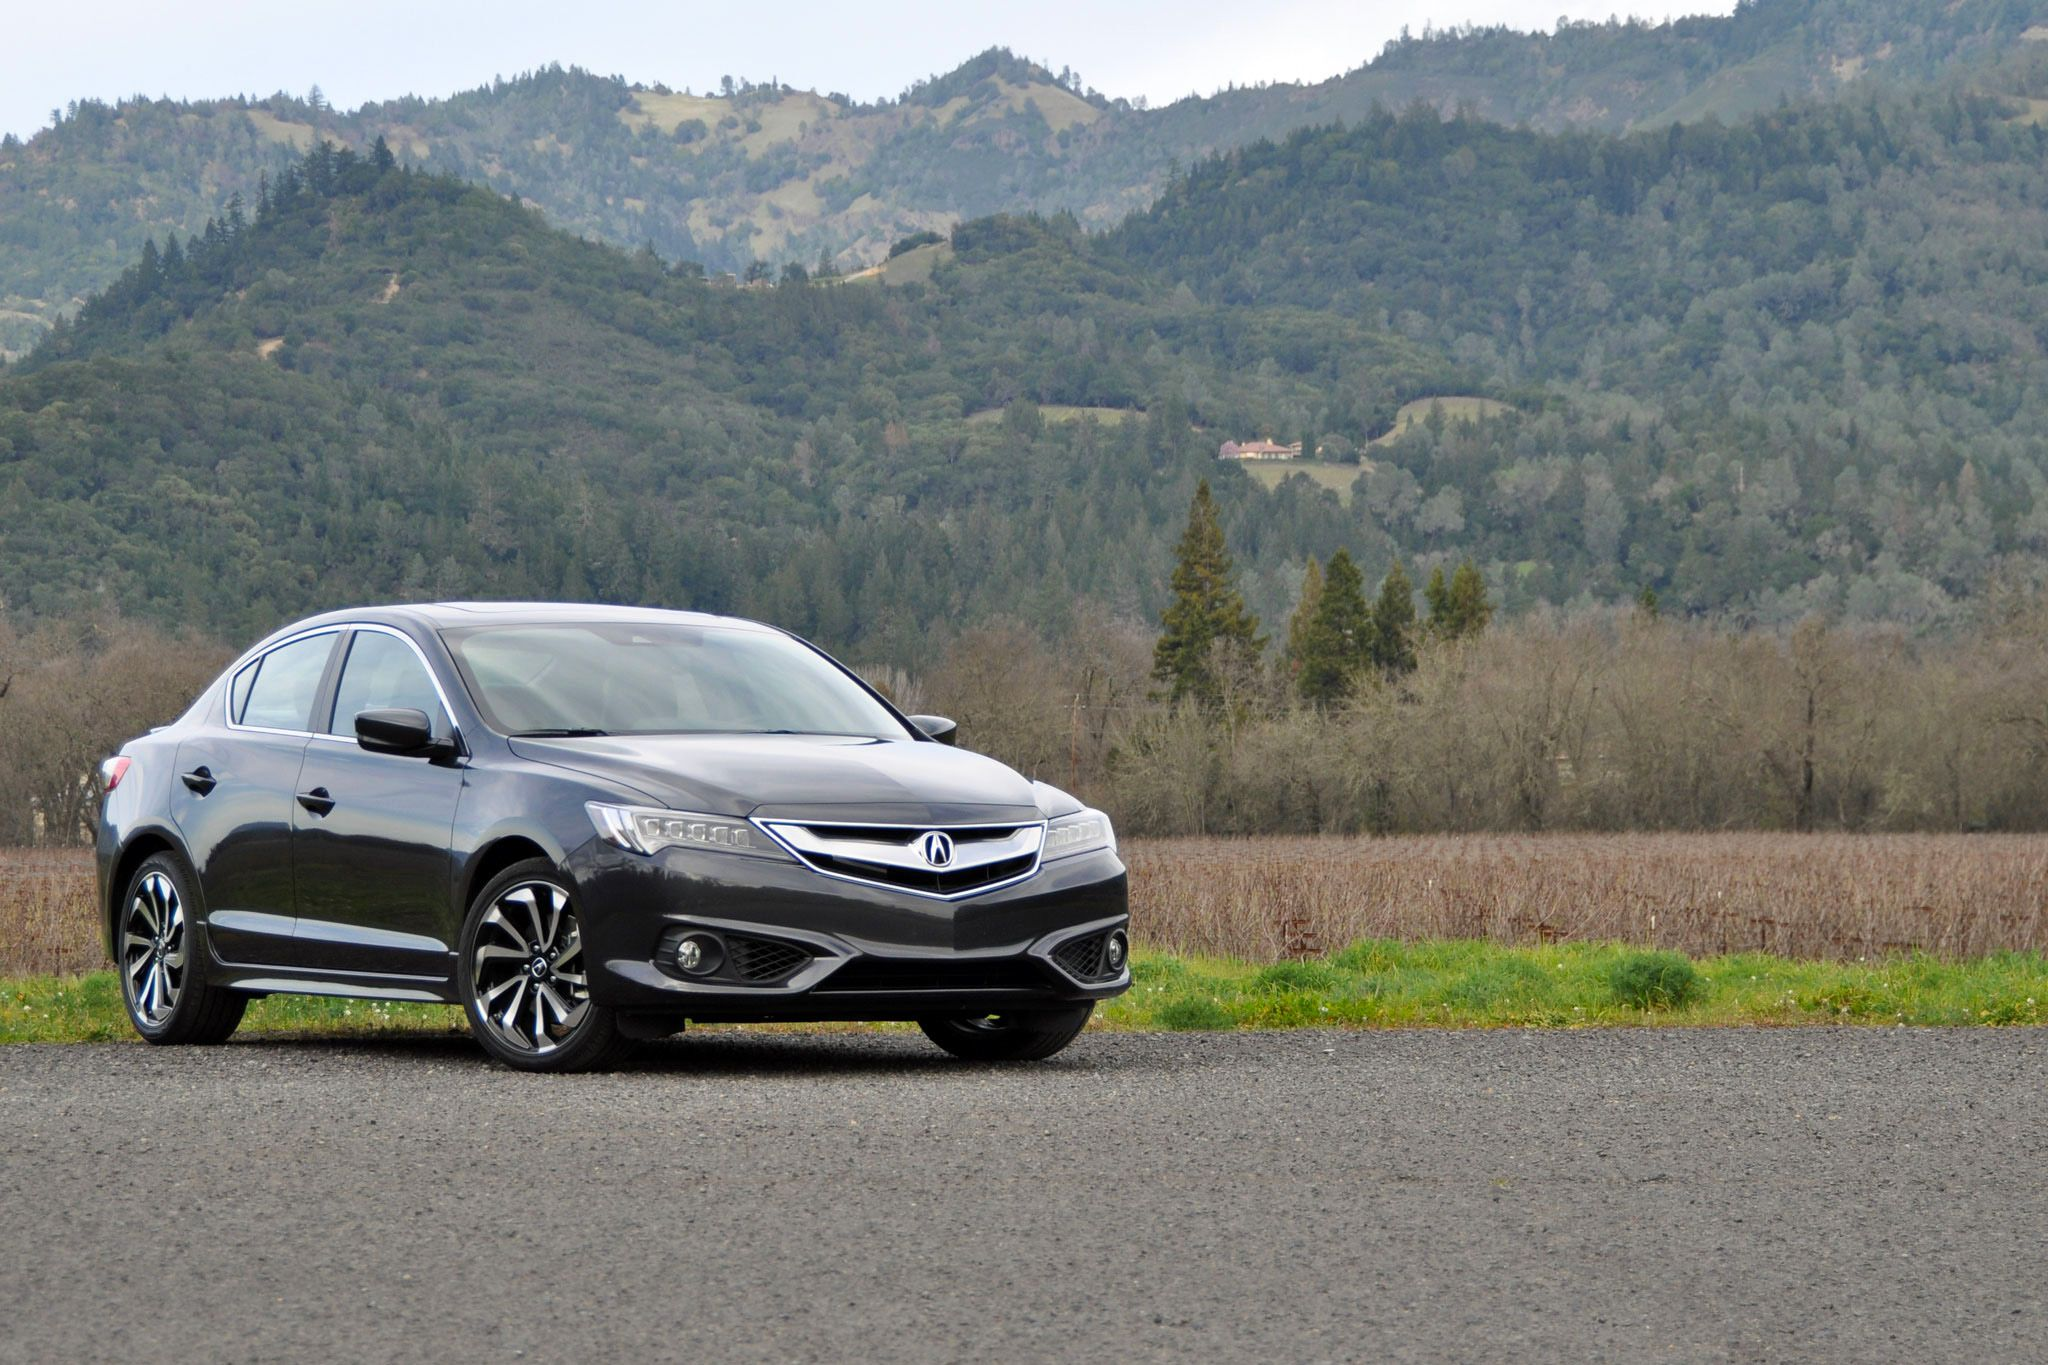 Graphite 2016 Acura ILX Parked by the Mountain Side